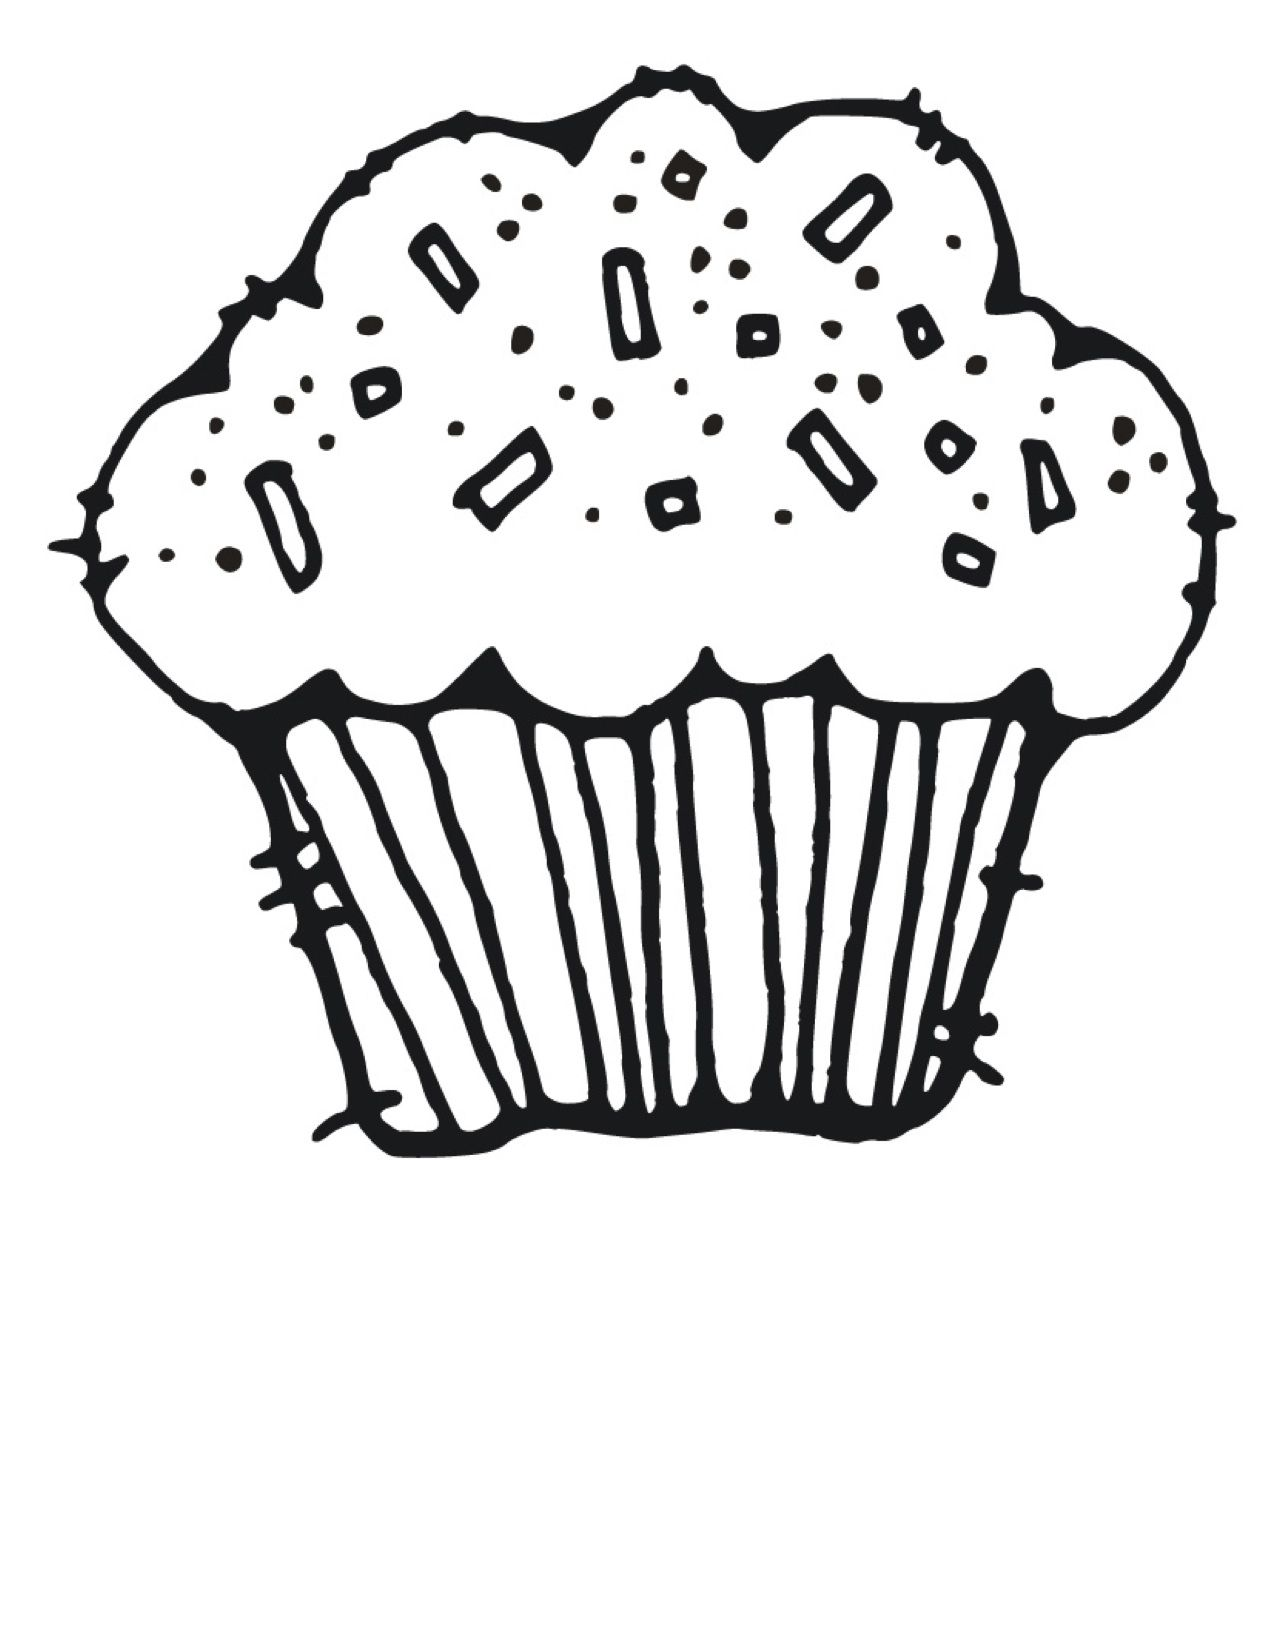 Muffins clipart kid. Cupcake birthday party board